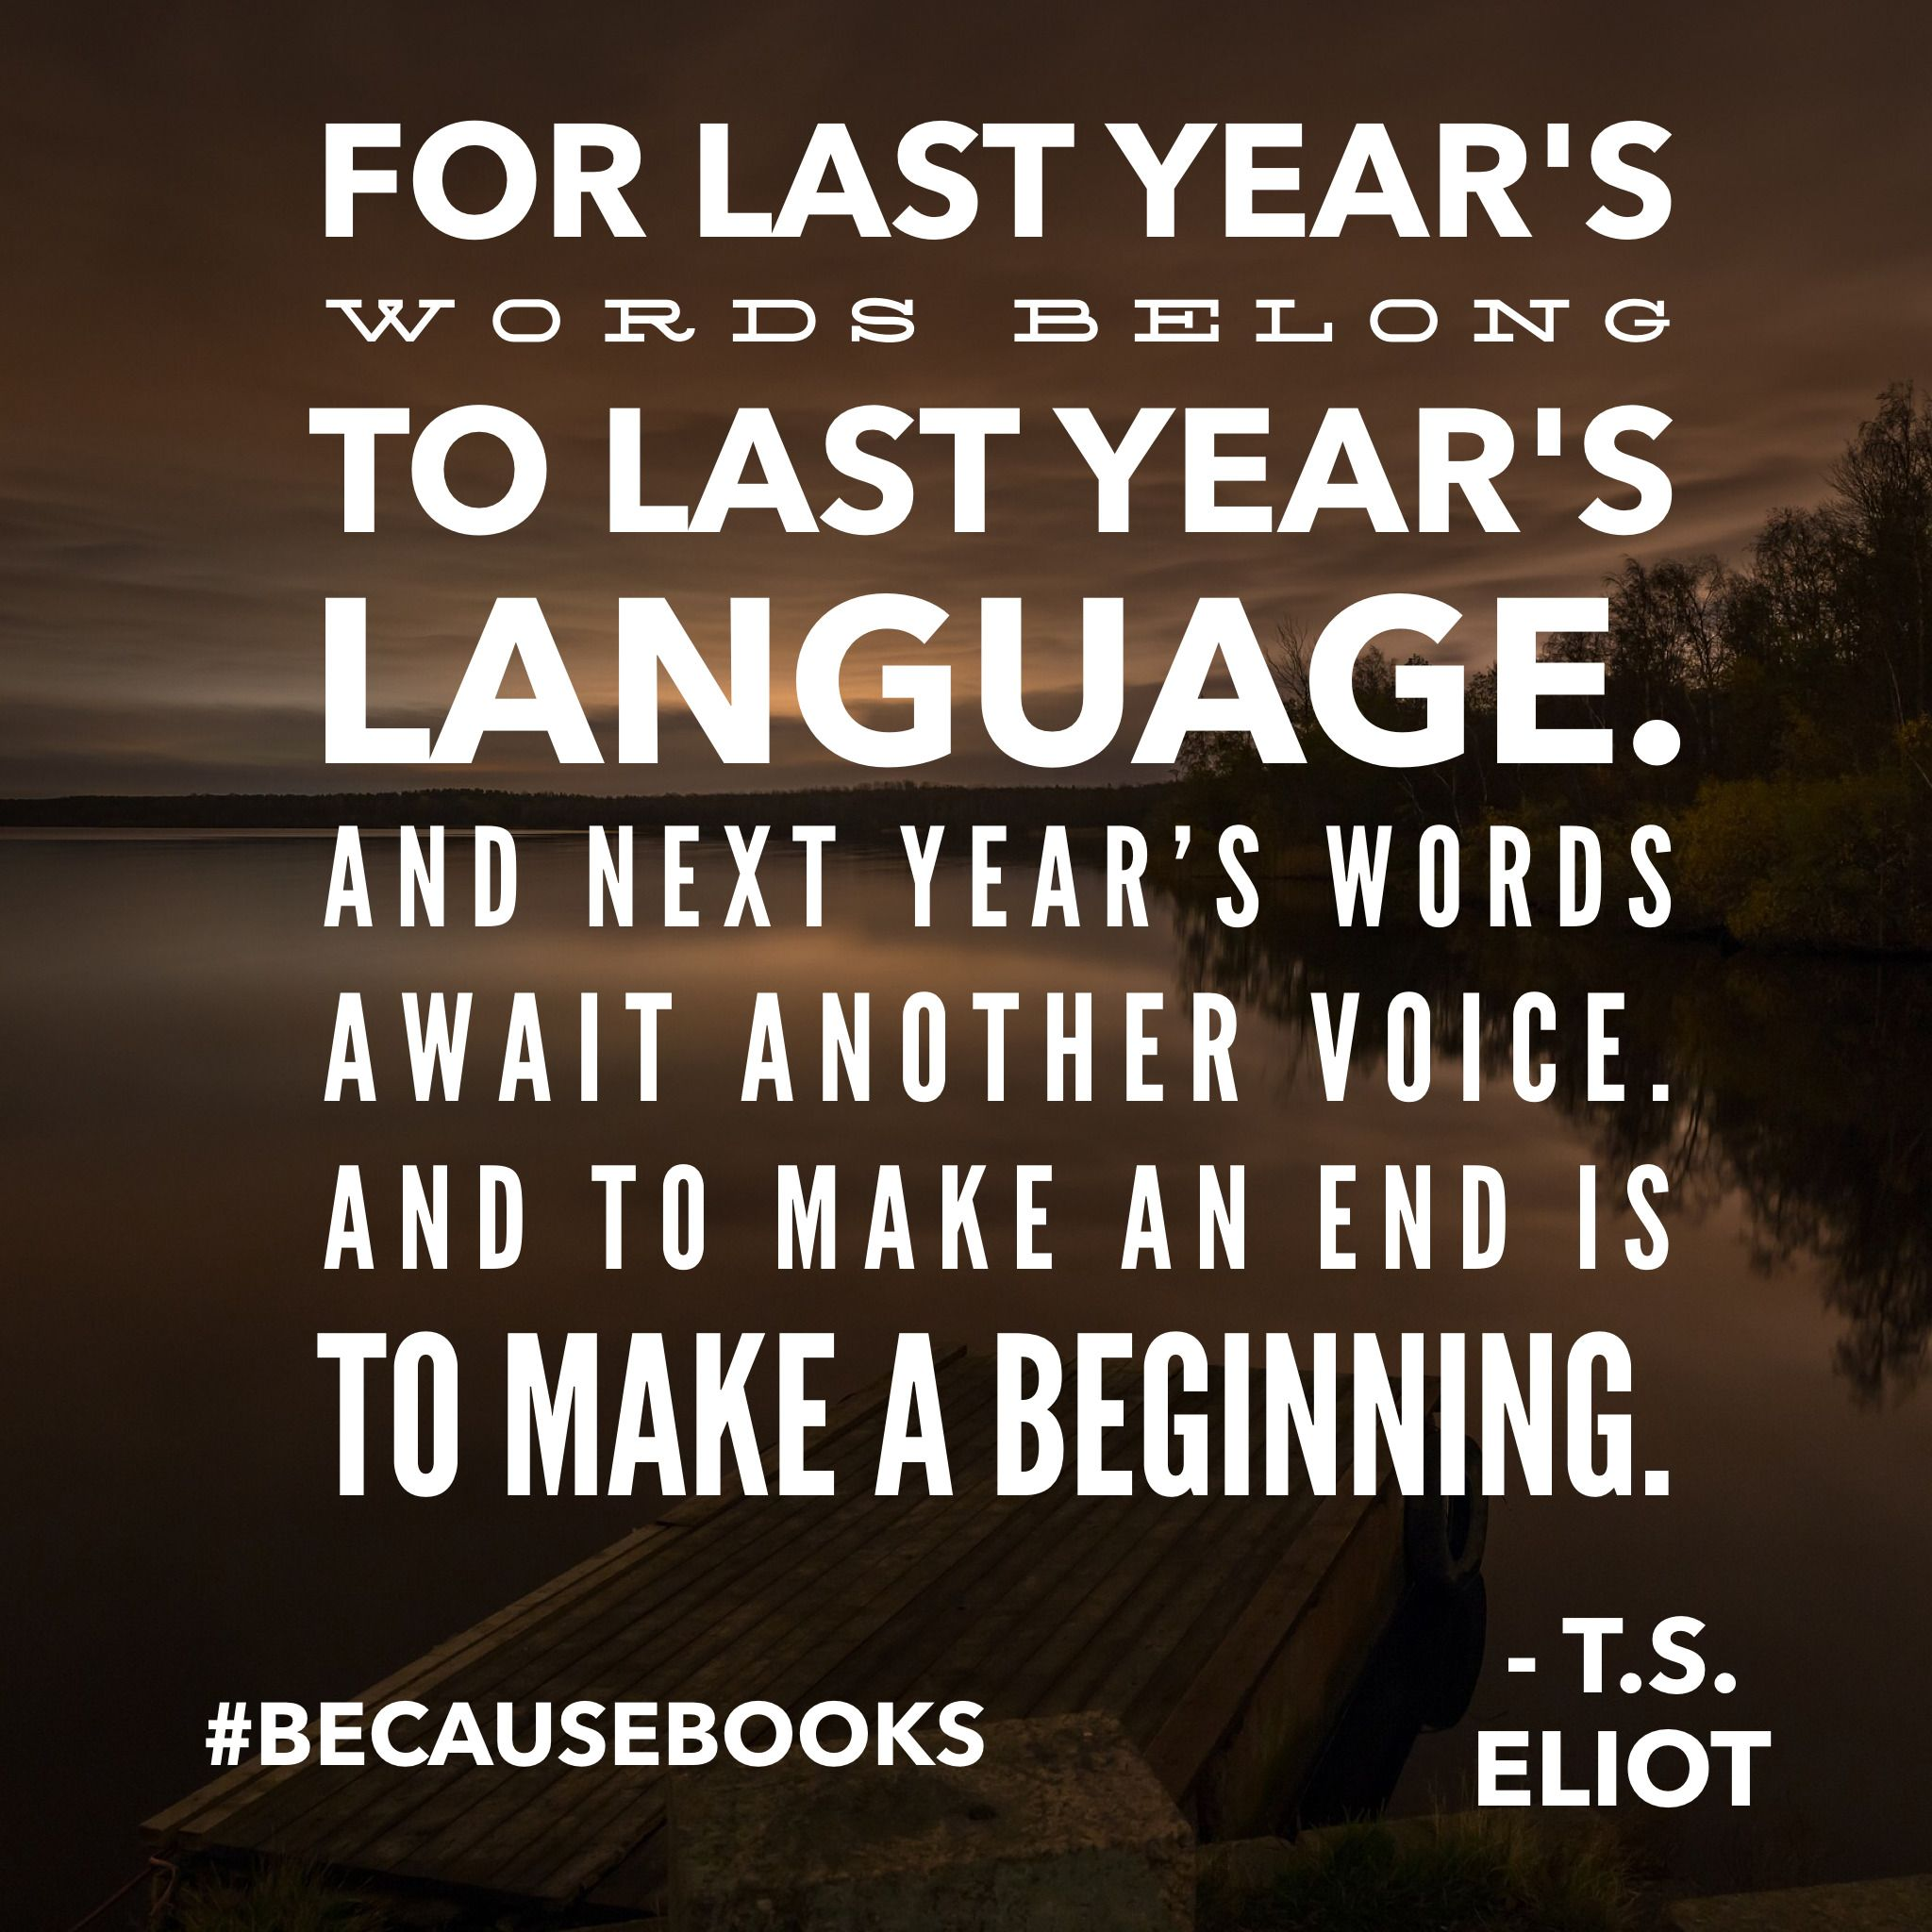 wise words for saying goodbye to the old year and welcoming the new year becausebooks upwardthinking